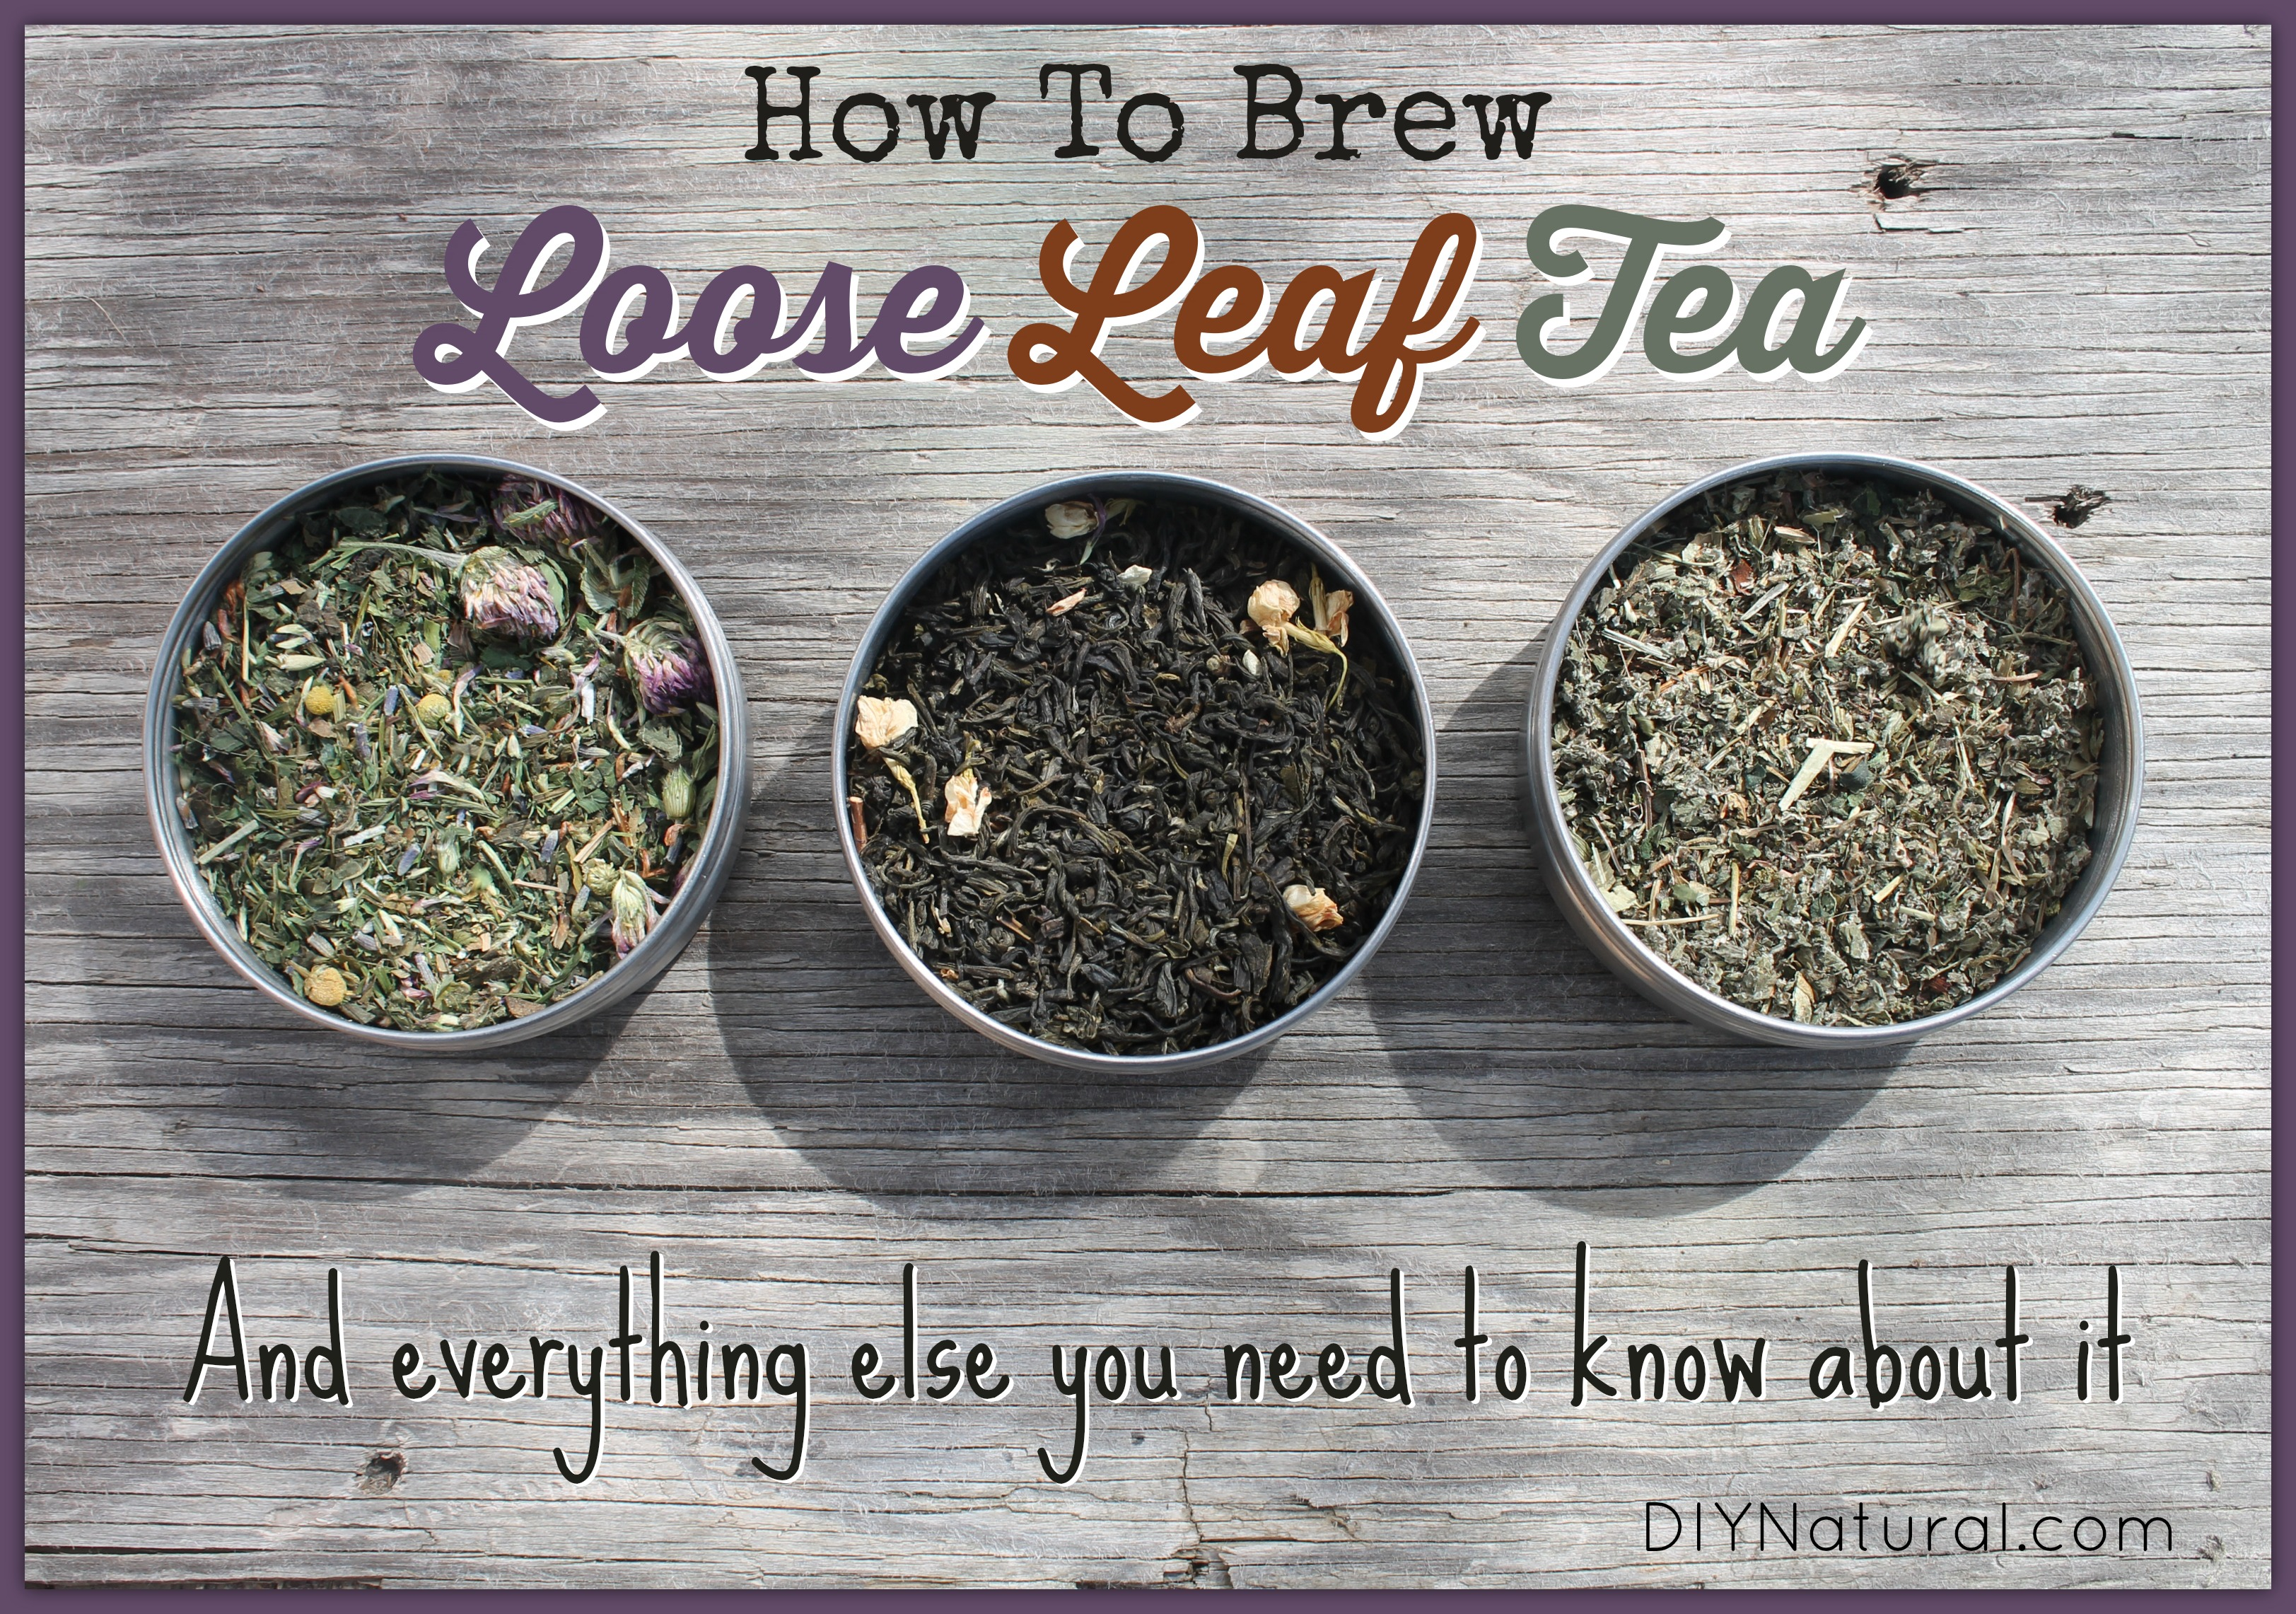 How To Brew Loose Leaf Tea And Everything You Need To Know